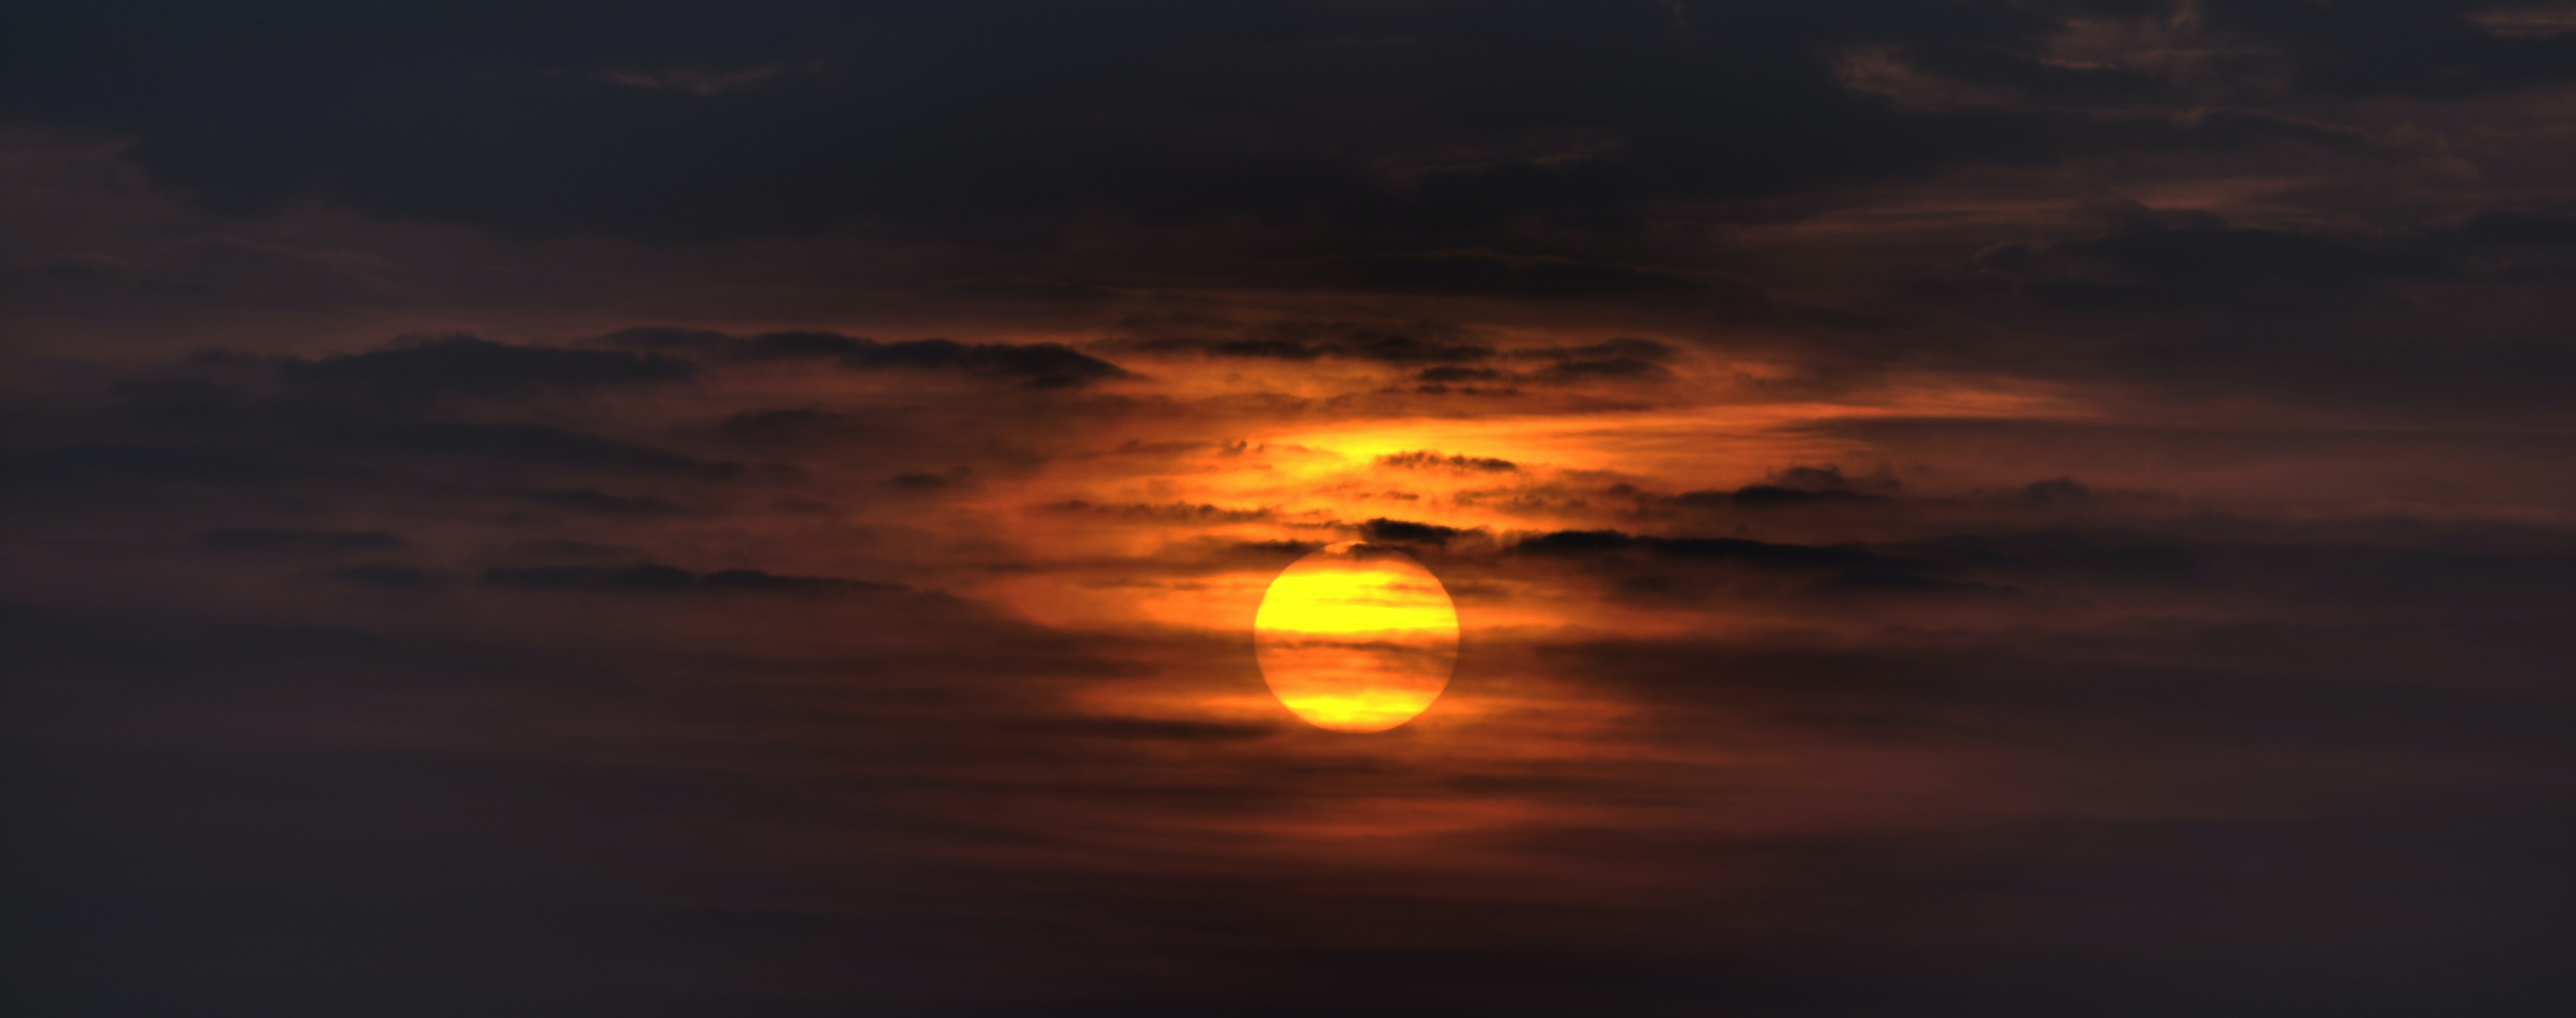 sunset covered by cloudy skies